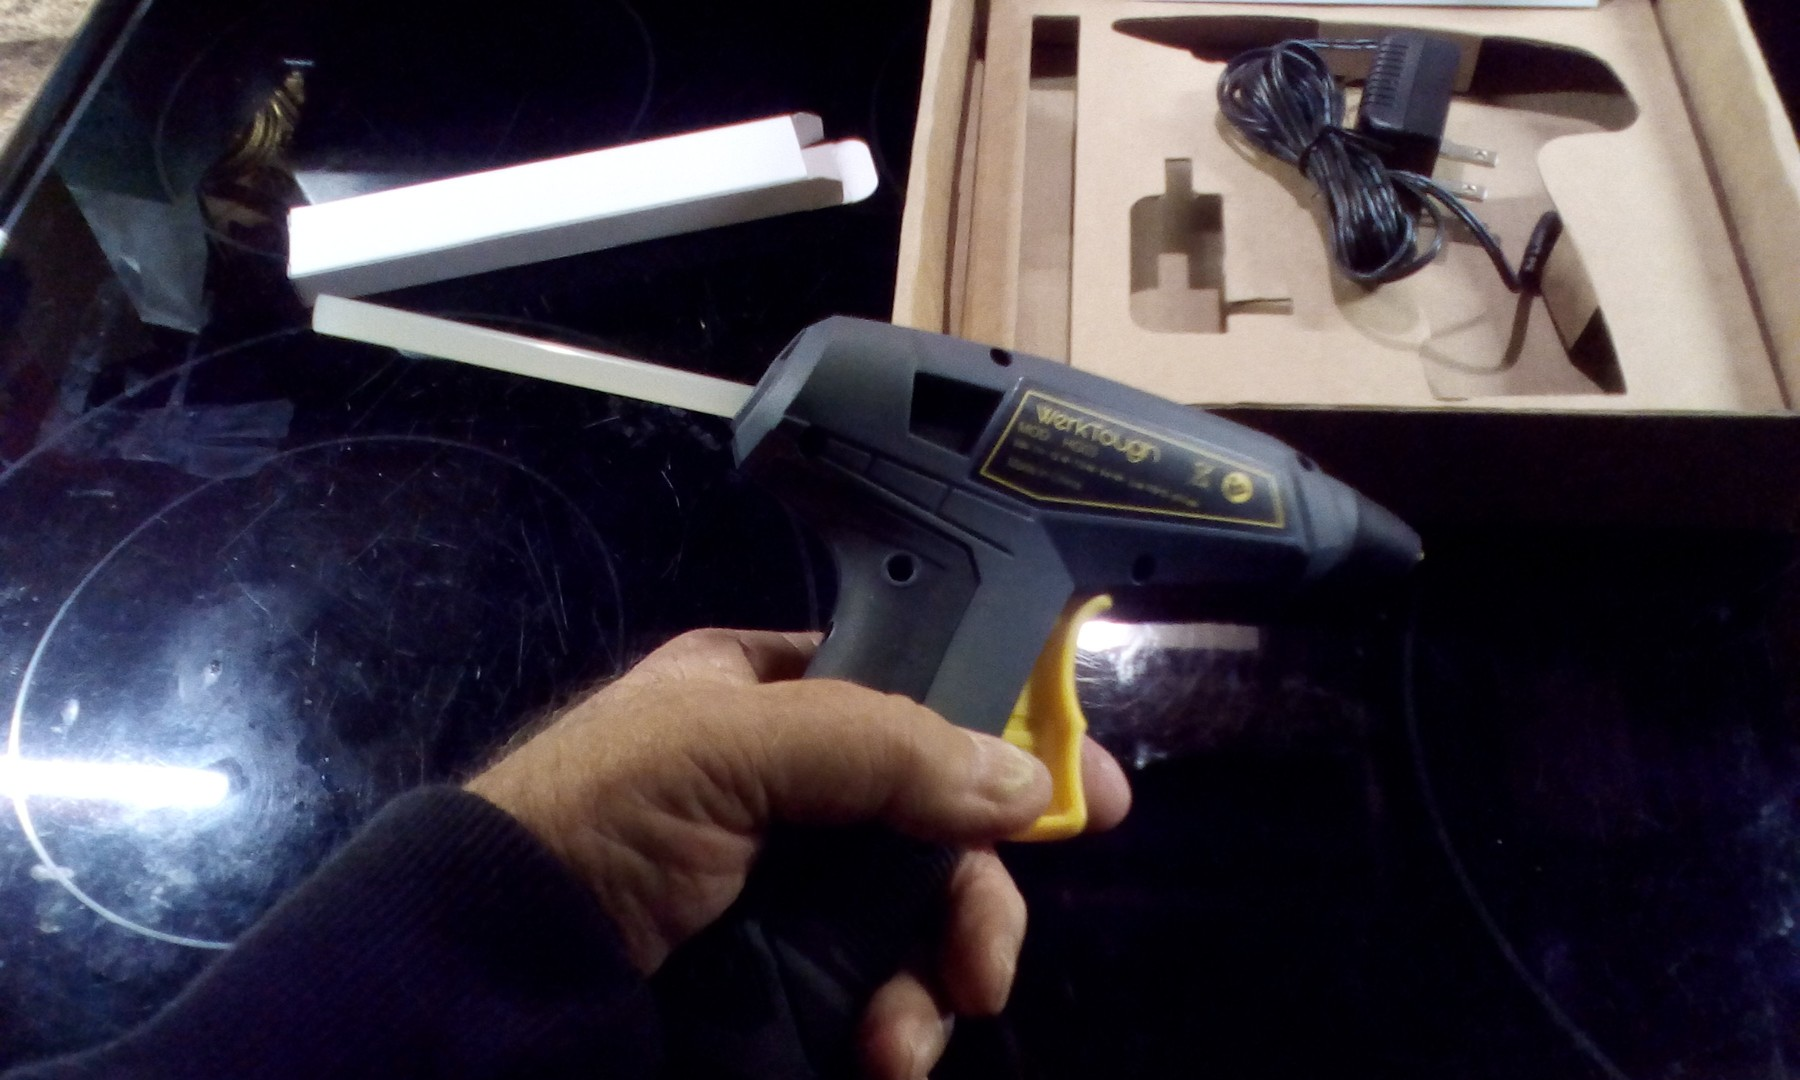 Cordless rechargeable hot glue gun